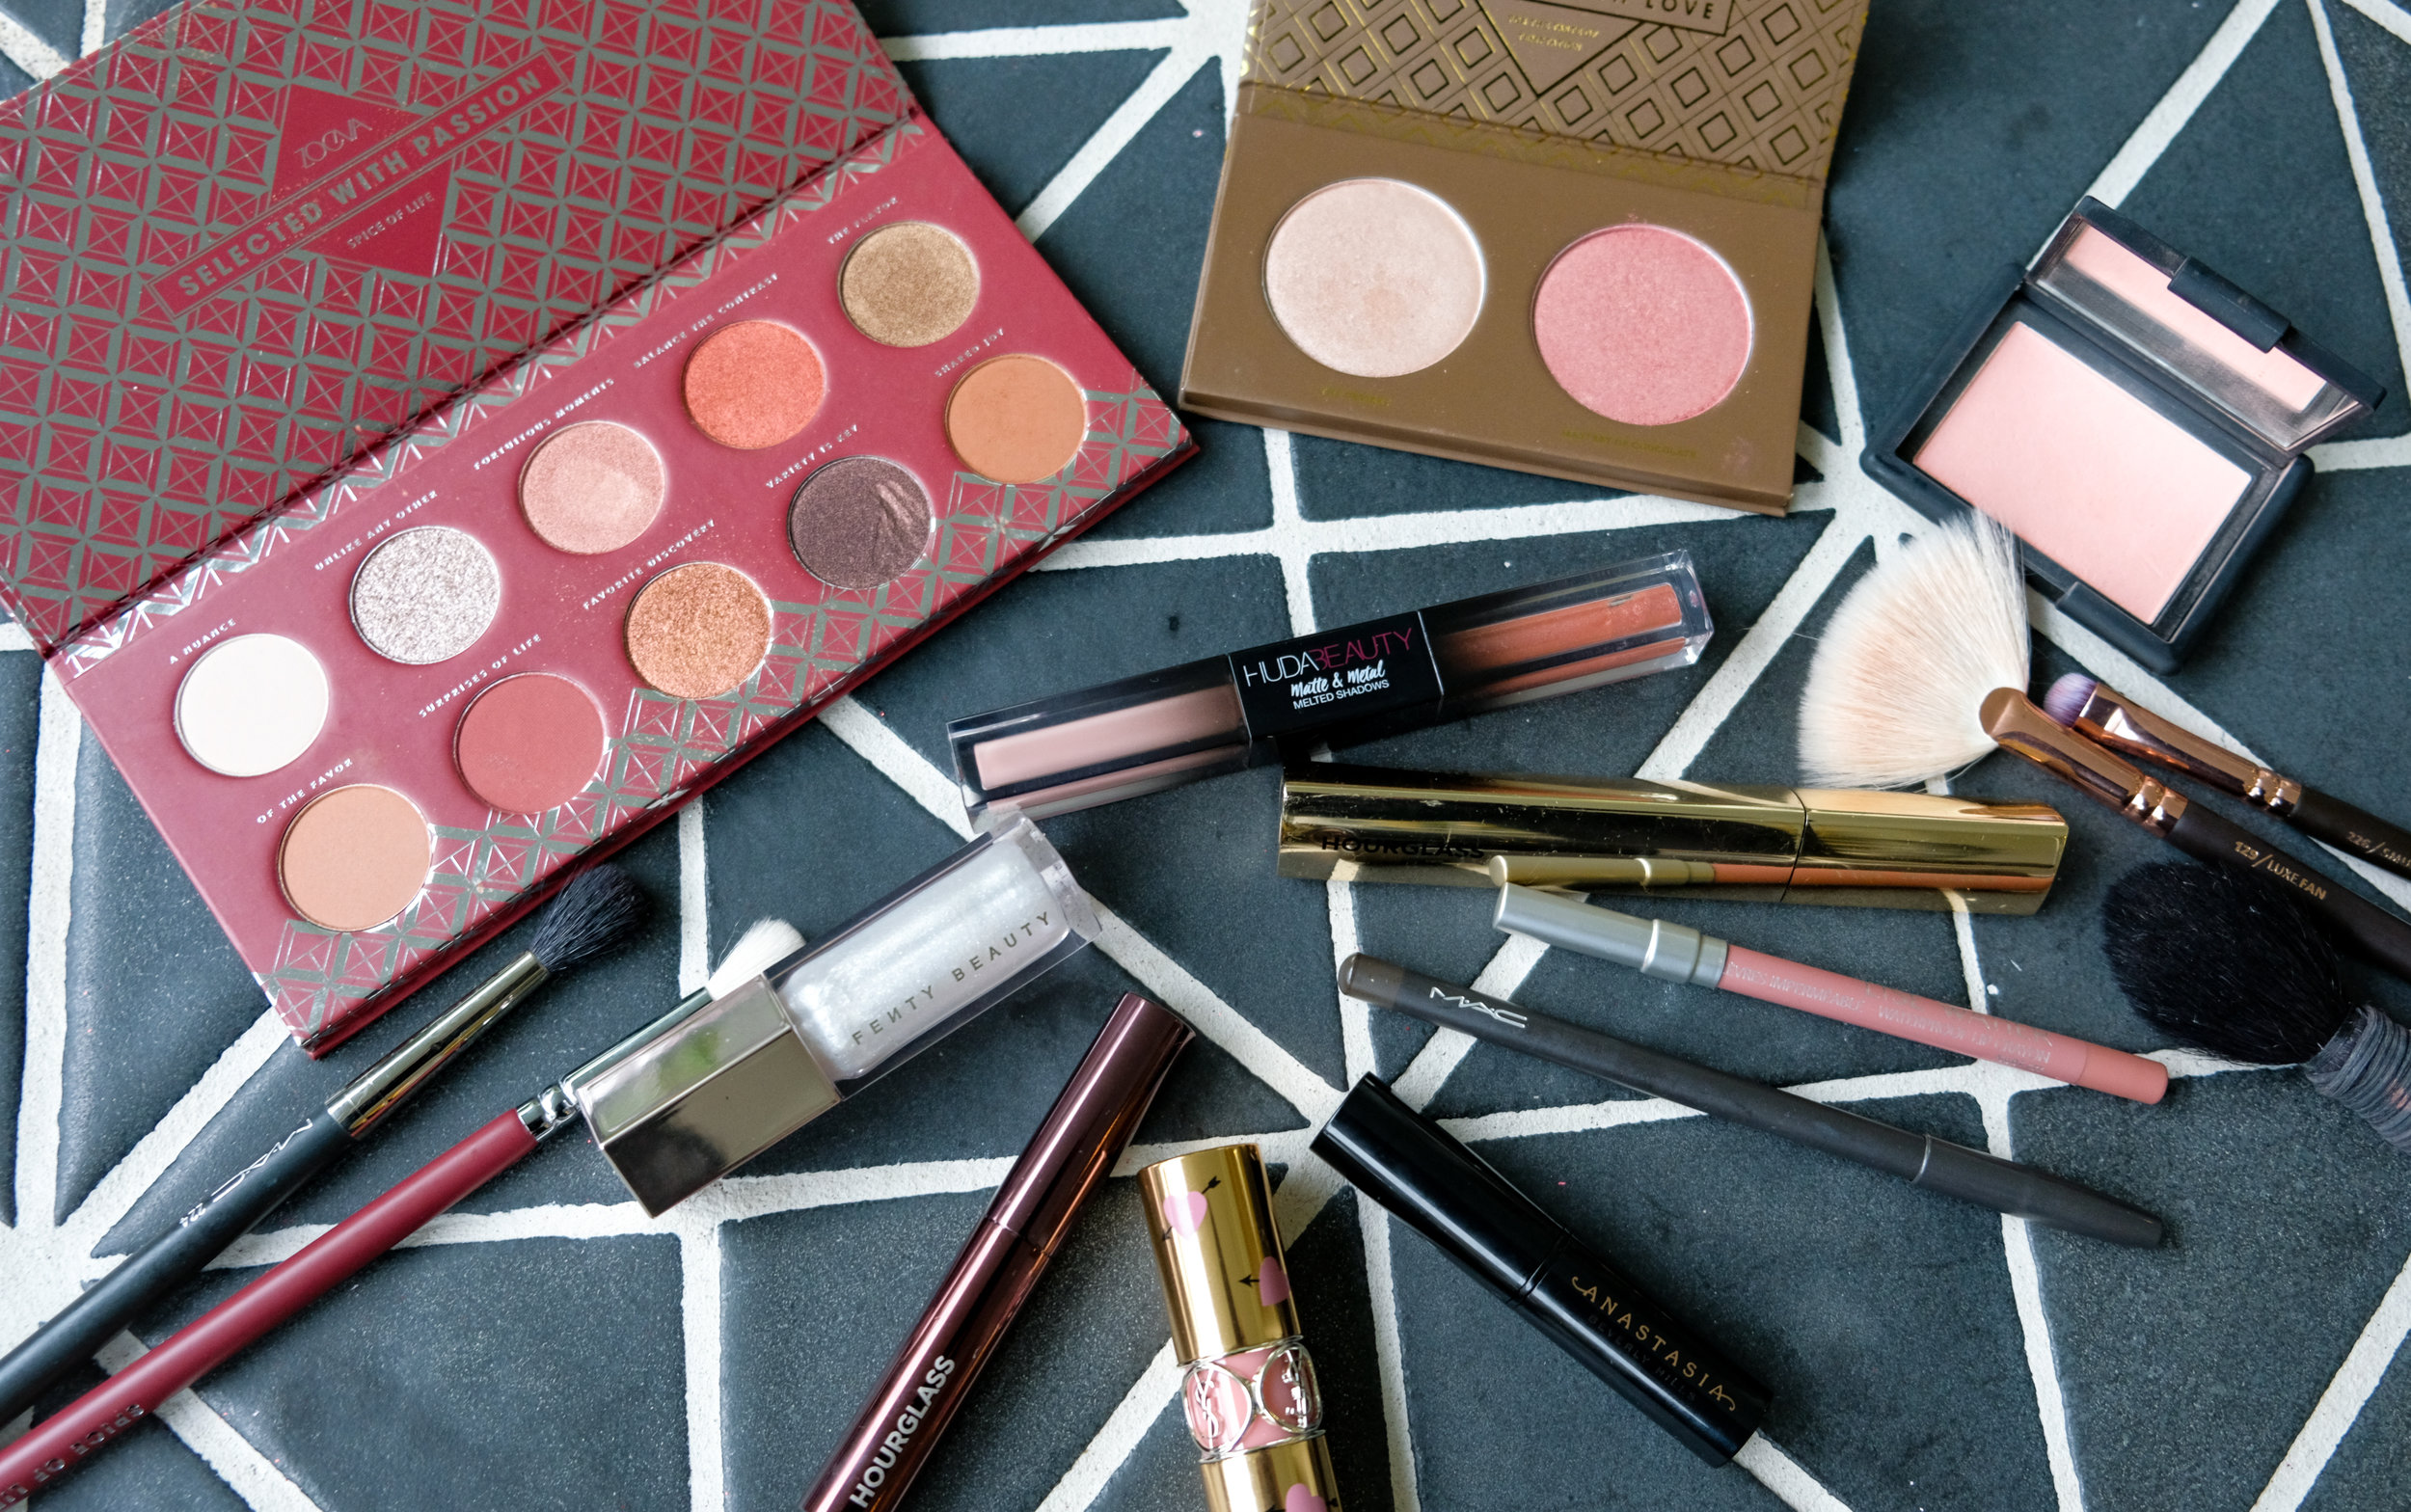 I called up my makeup artist, Nikki and we discussed how to put together a makeup look that isn't so typical for Valentine's Day. My husband hates a red lip, so we're going to keep it soft and glamorous with a few new products.